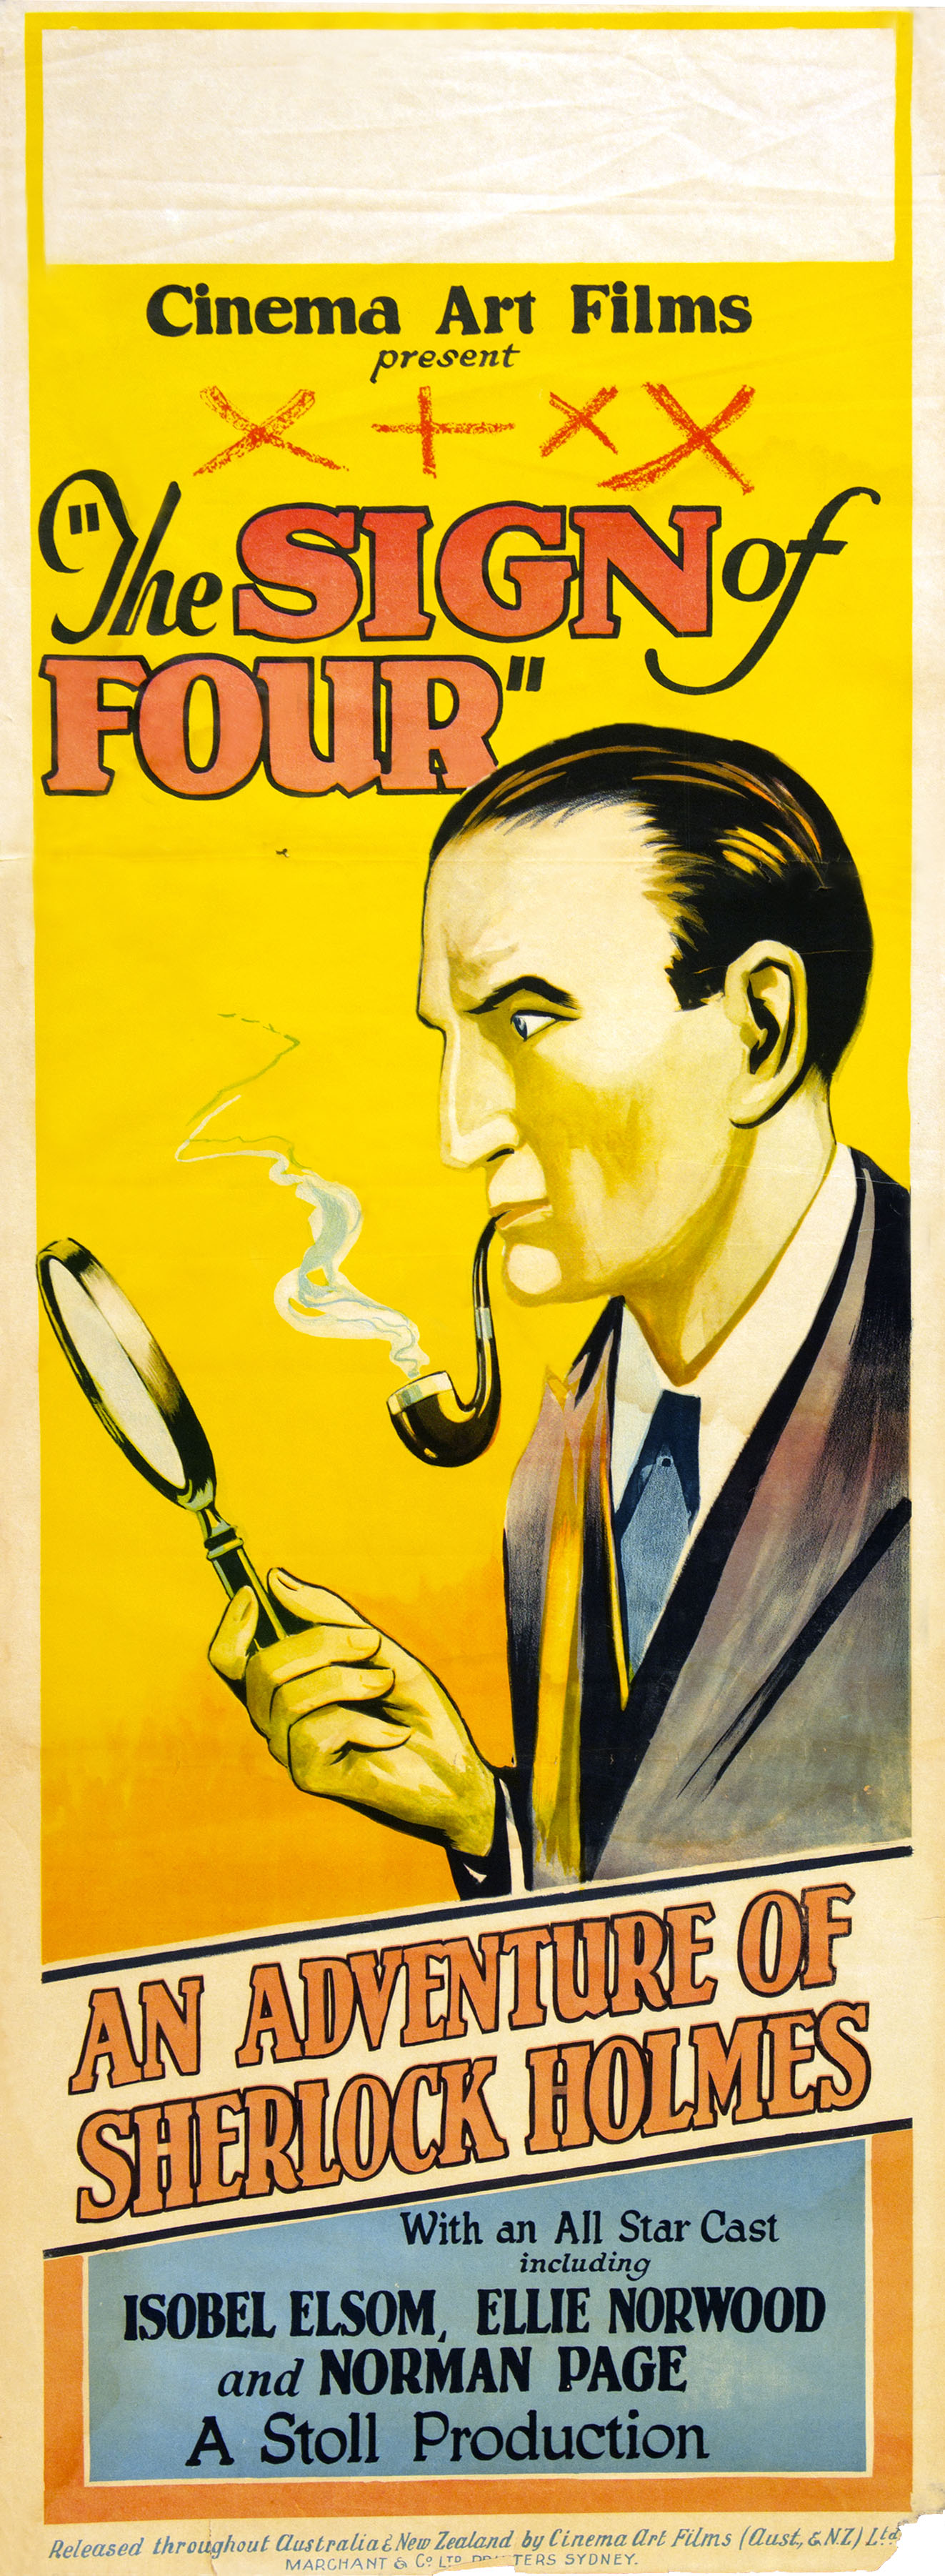 Watson robtryan the sign of four australian film poster 1923 fandeluxe Images